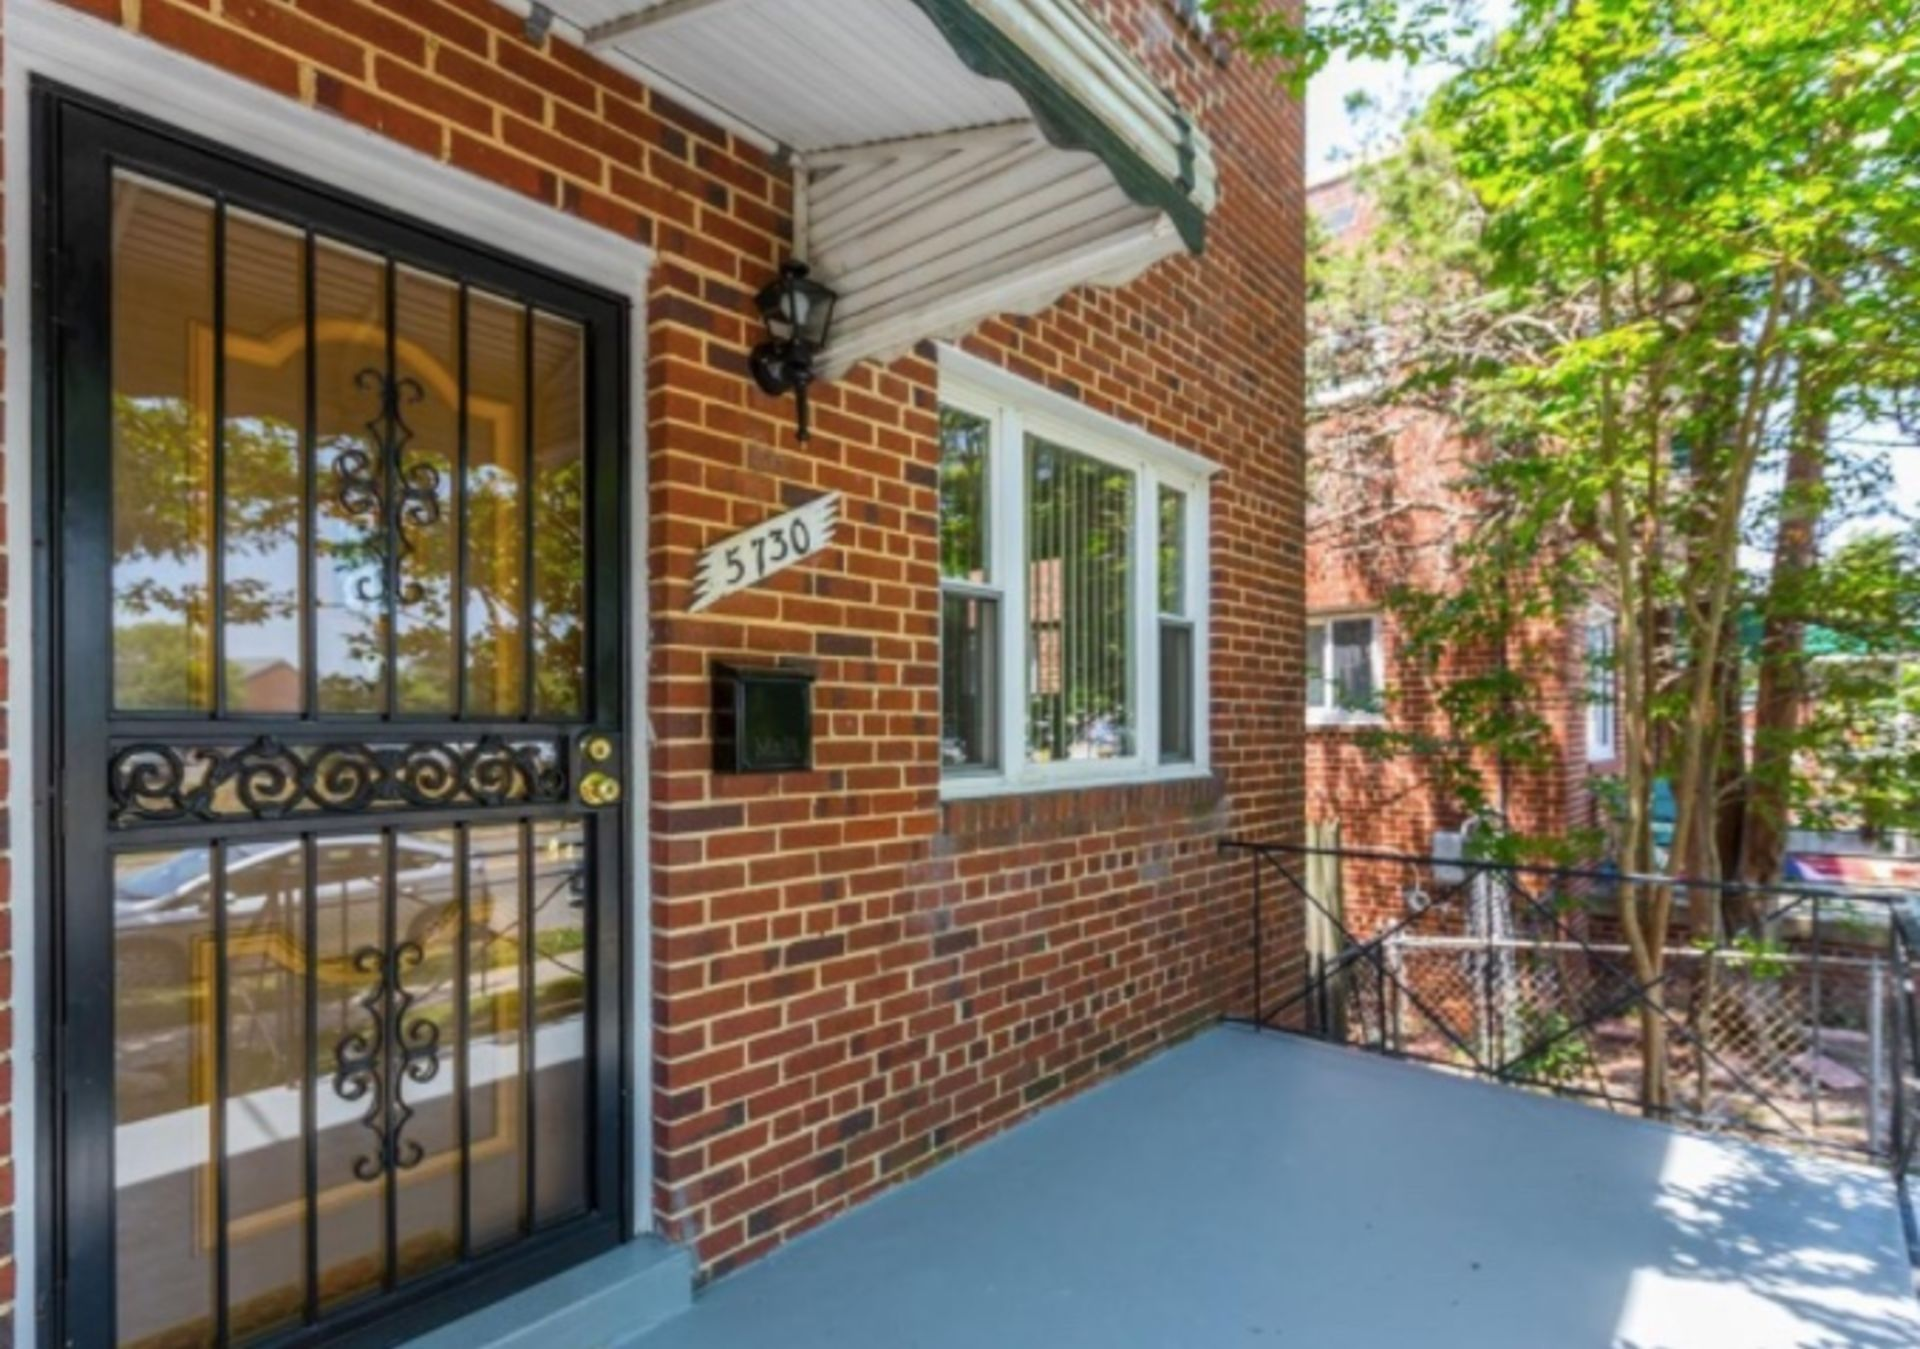 5730 Eastern Ave. NE – JUST SOLD